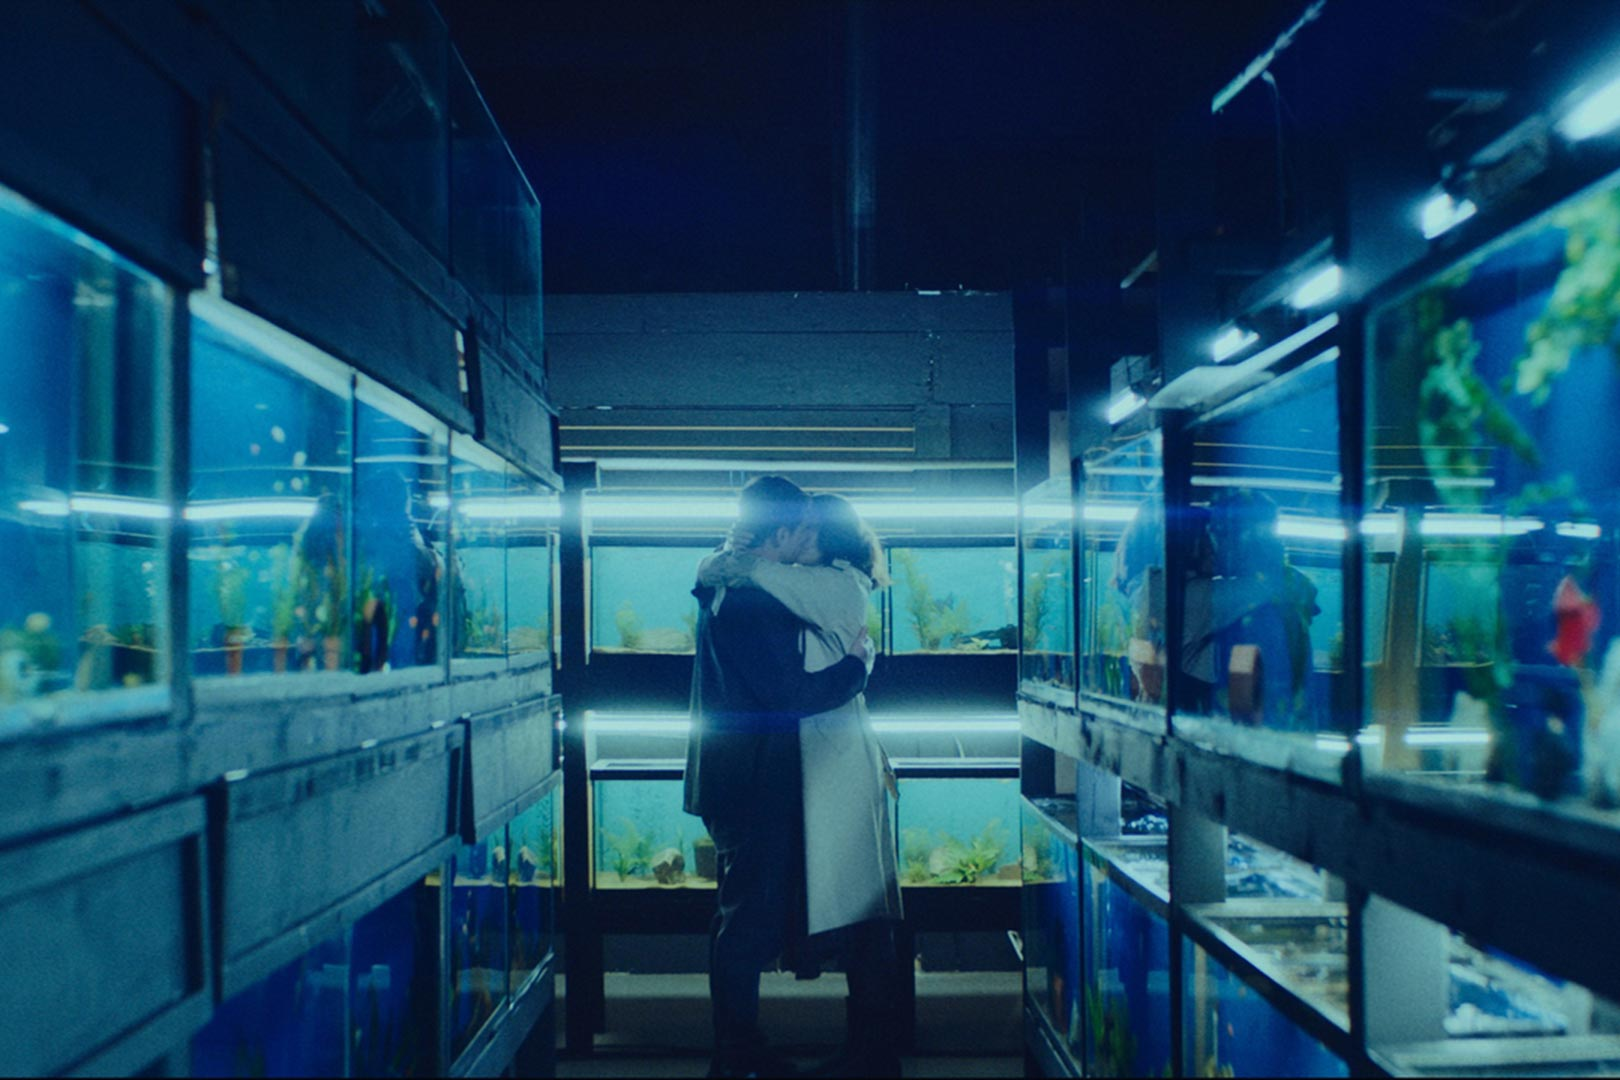 """The upcoming film """"Little Fish,"""" based on a story by Aja Gabel, considers: without shared memories, what is the nature of love? (Courtesy of IFC Films. An IFC Films release.)"""